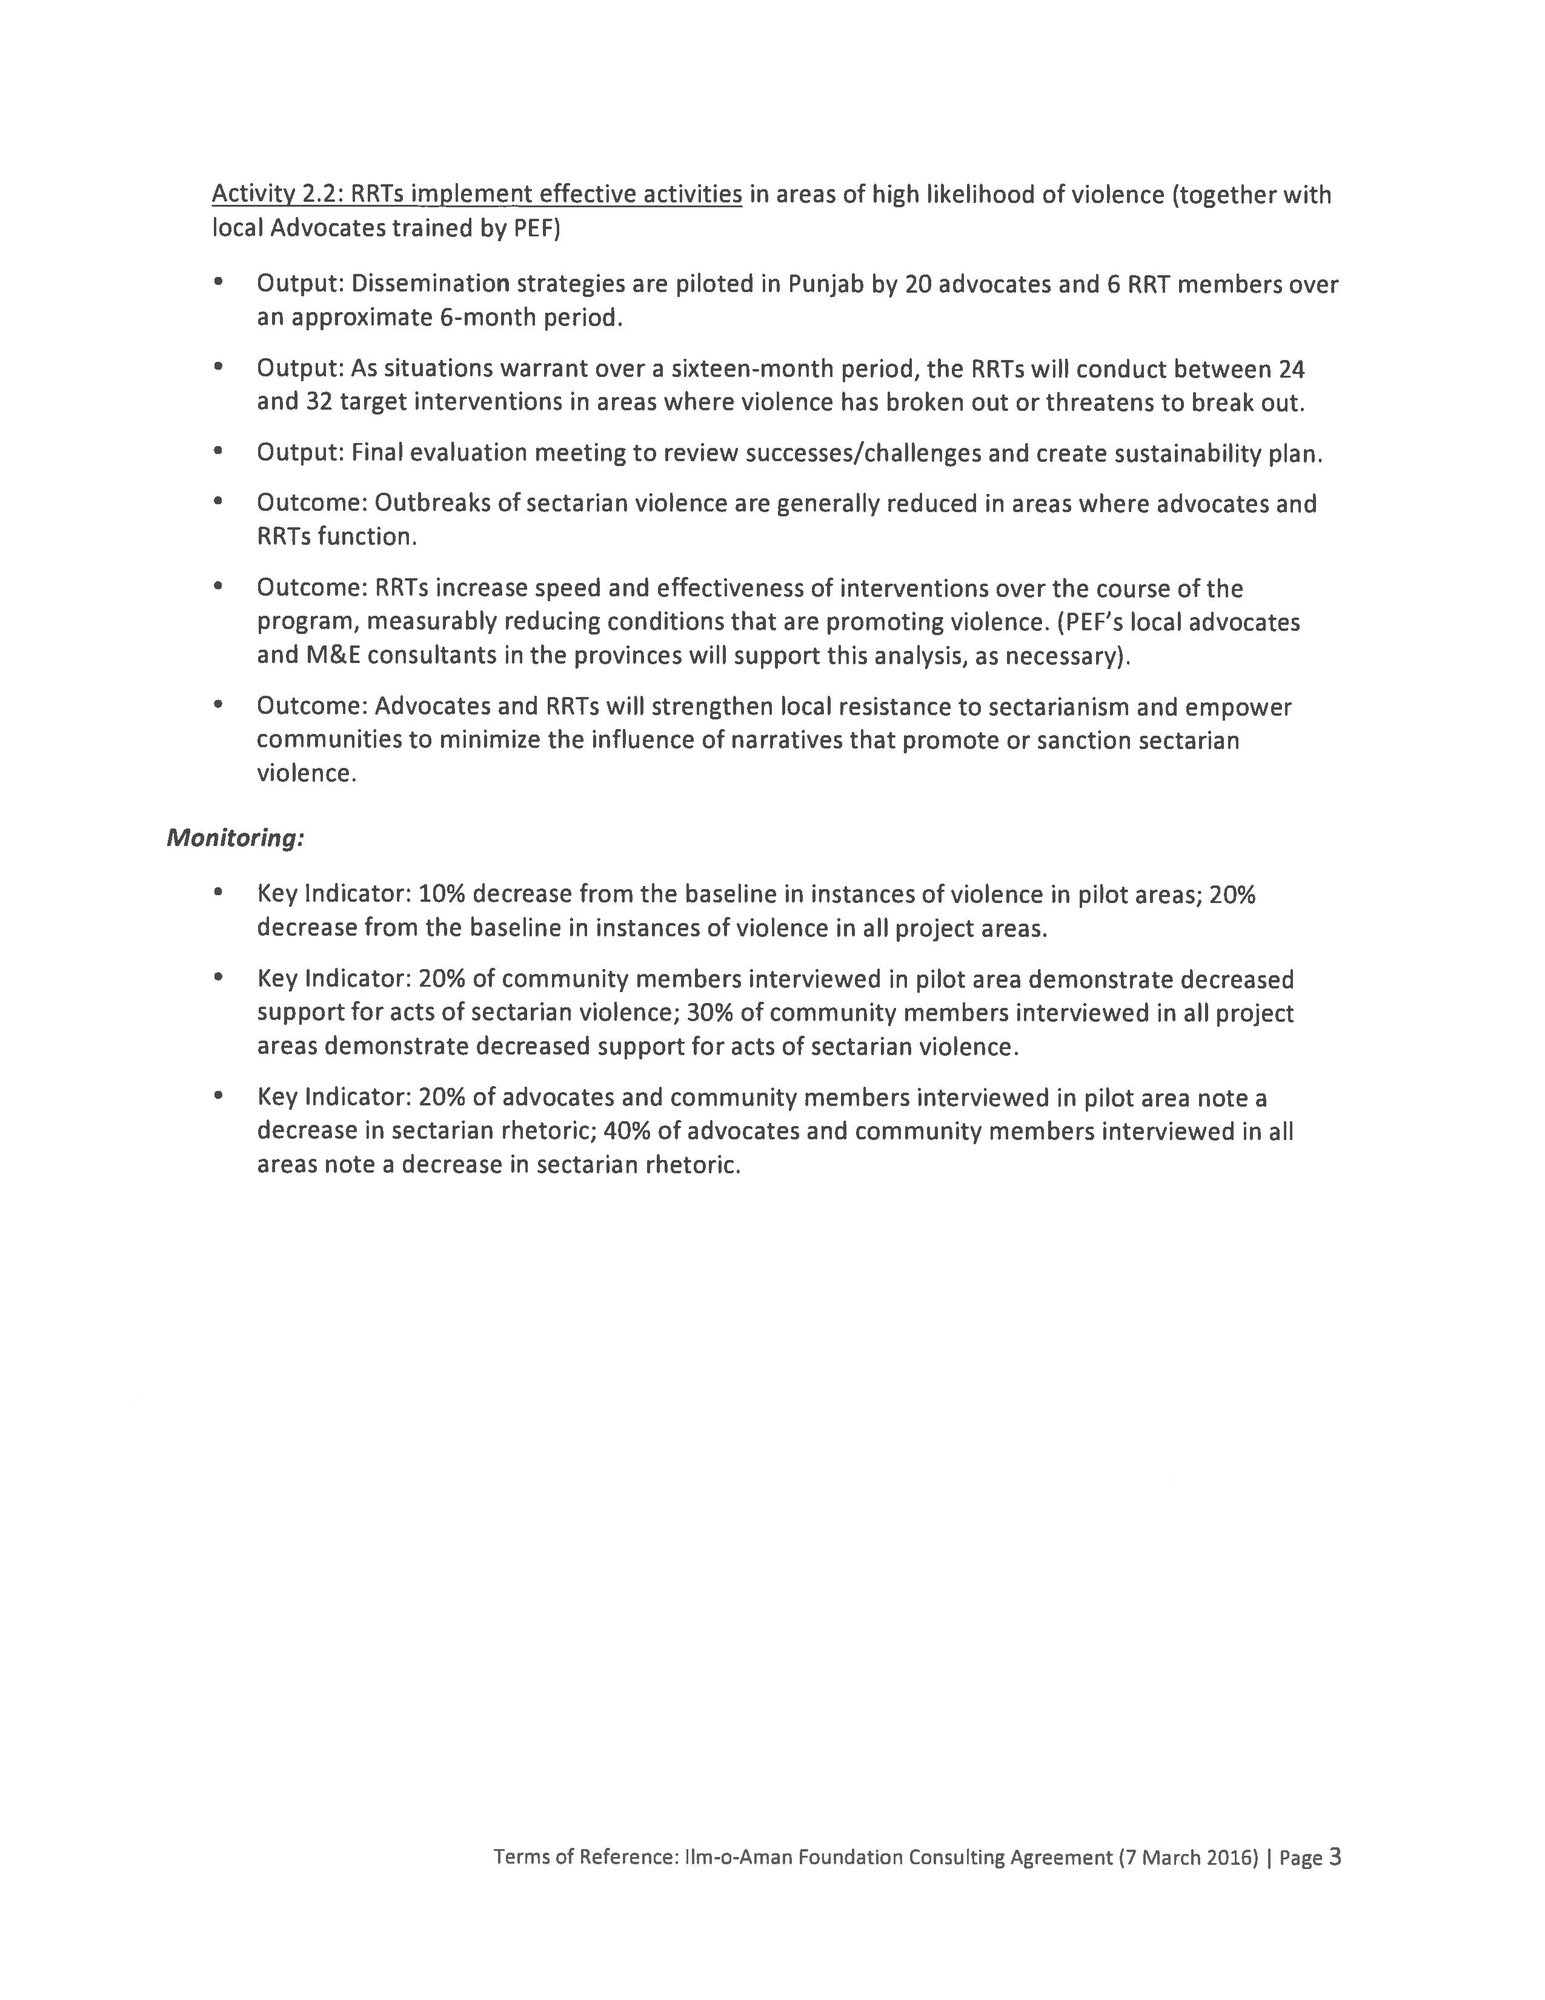 US contract for Ashrafi-page-006.jpg